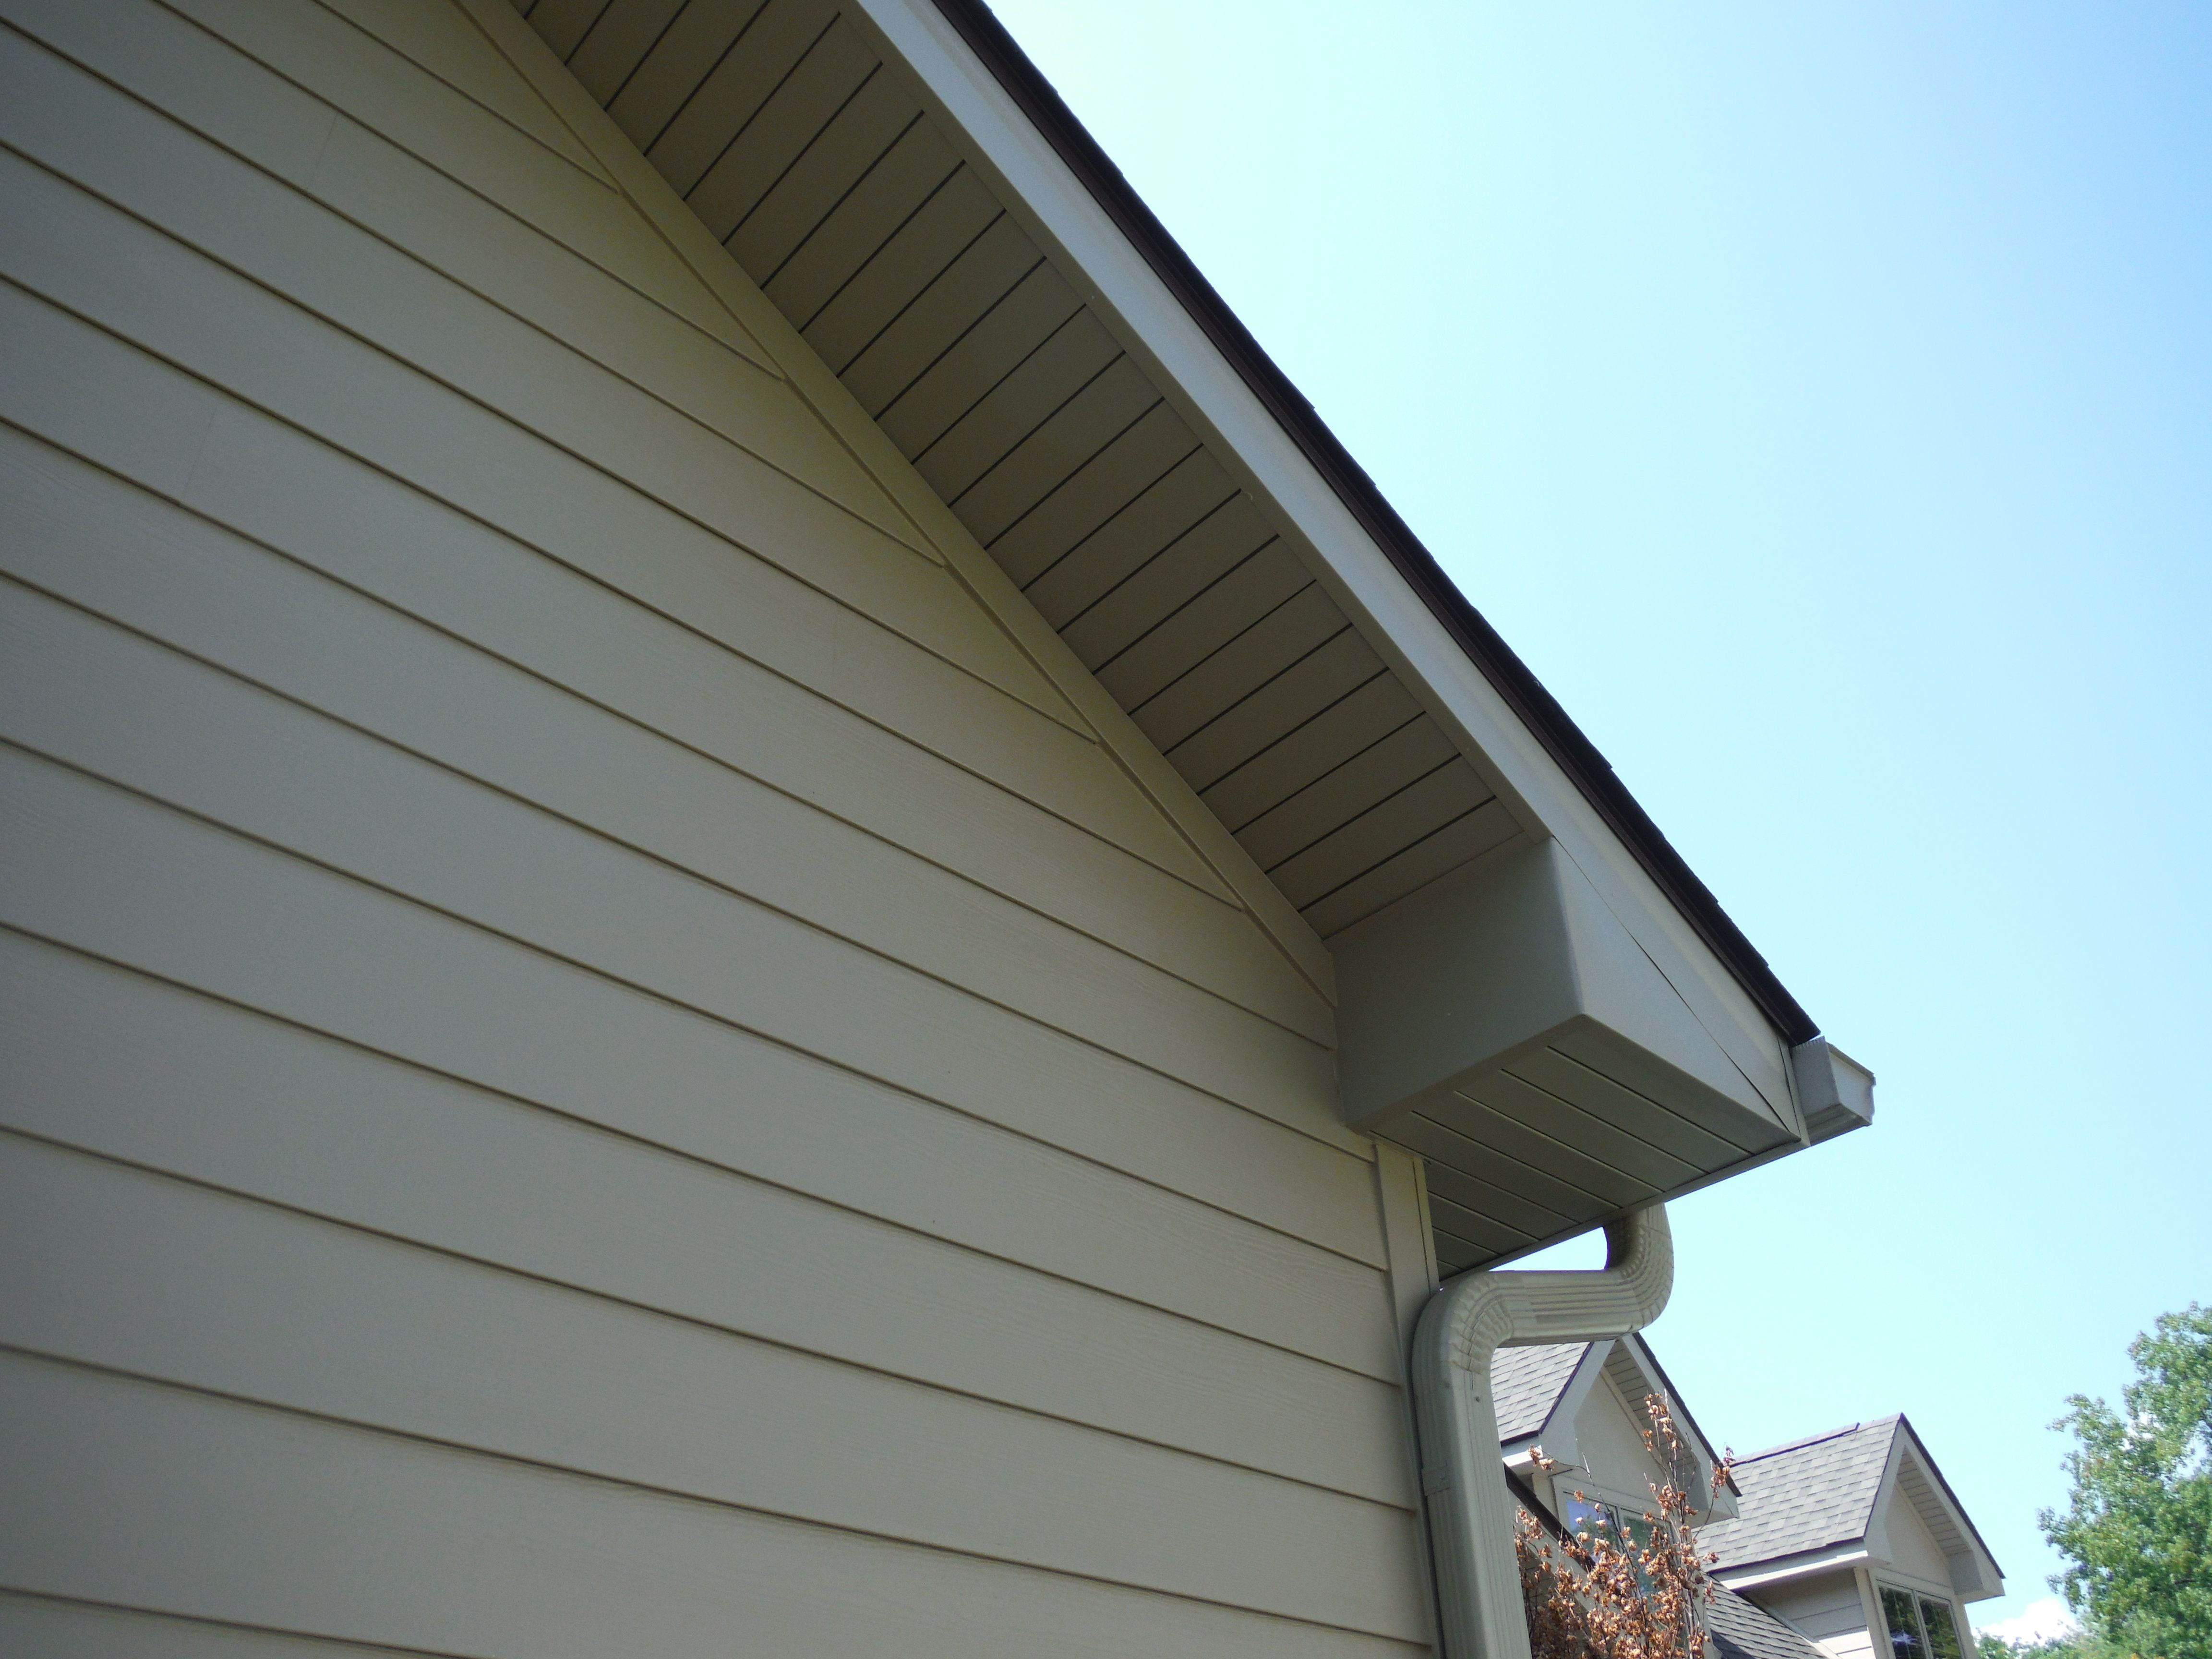 Another Close Up Picture Of Jh Lap Siding In Khaki Brown 7 1 4 Inch Exposure With A Look At The Aluminum Wra Hardie Siding Shingle Siding James Hardie Siding